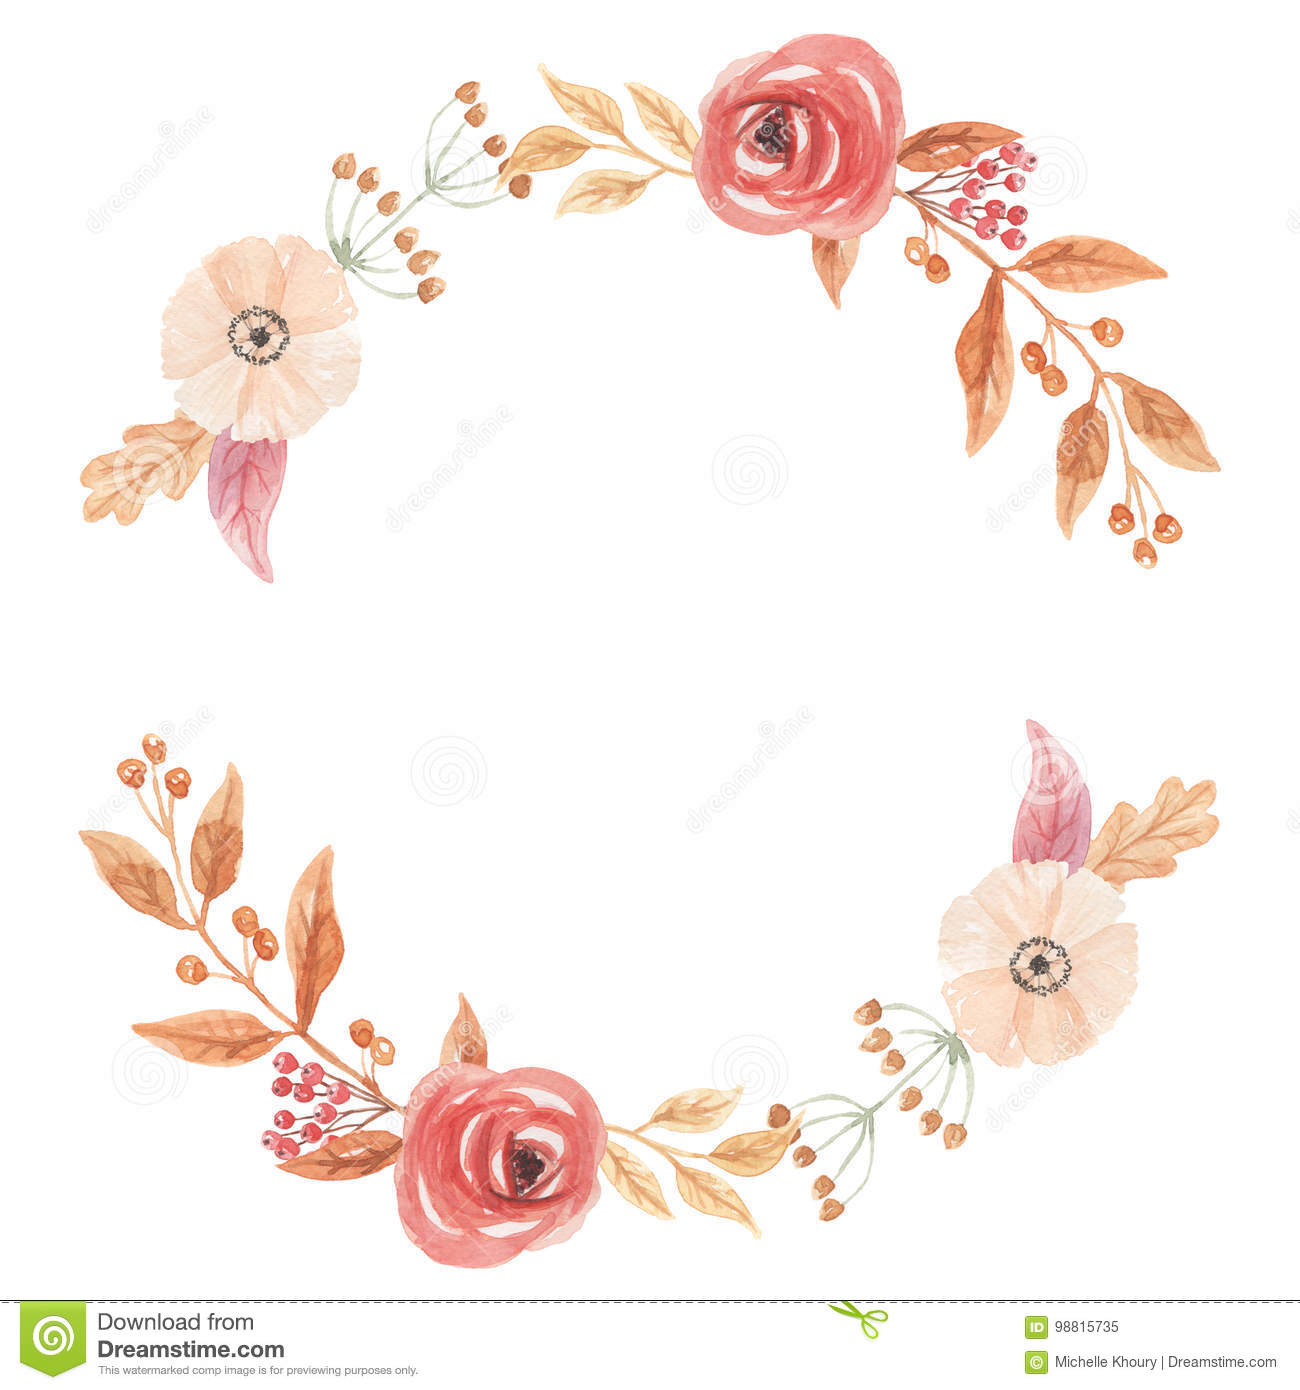 Watercolor Autumn Vintage Wreath Garland Frame Fall Leaves Circle